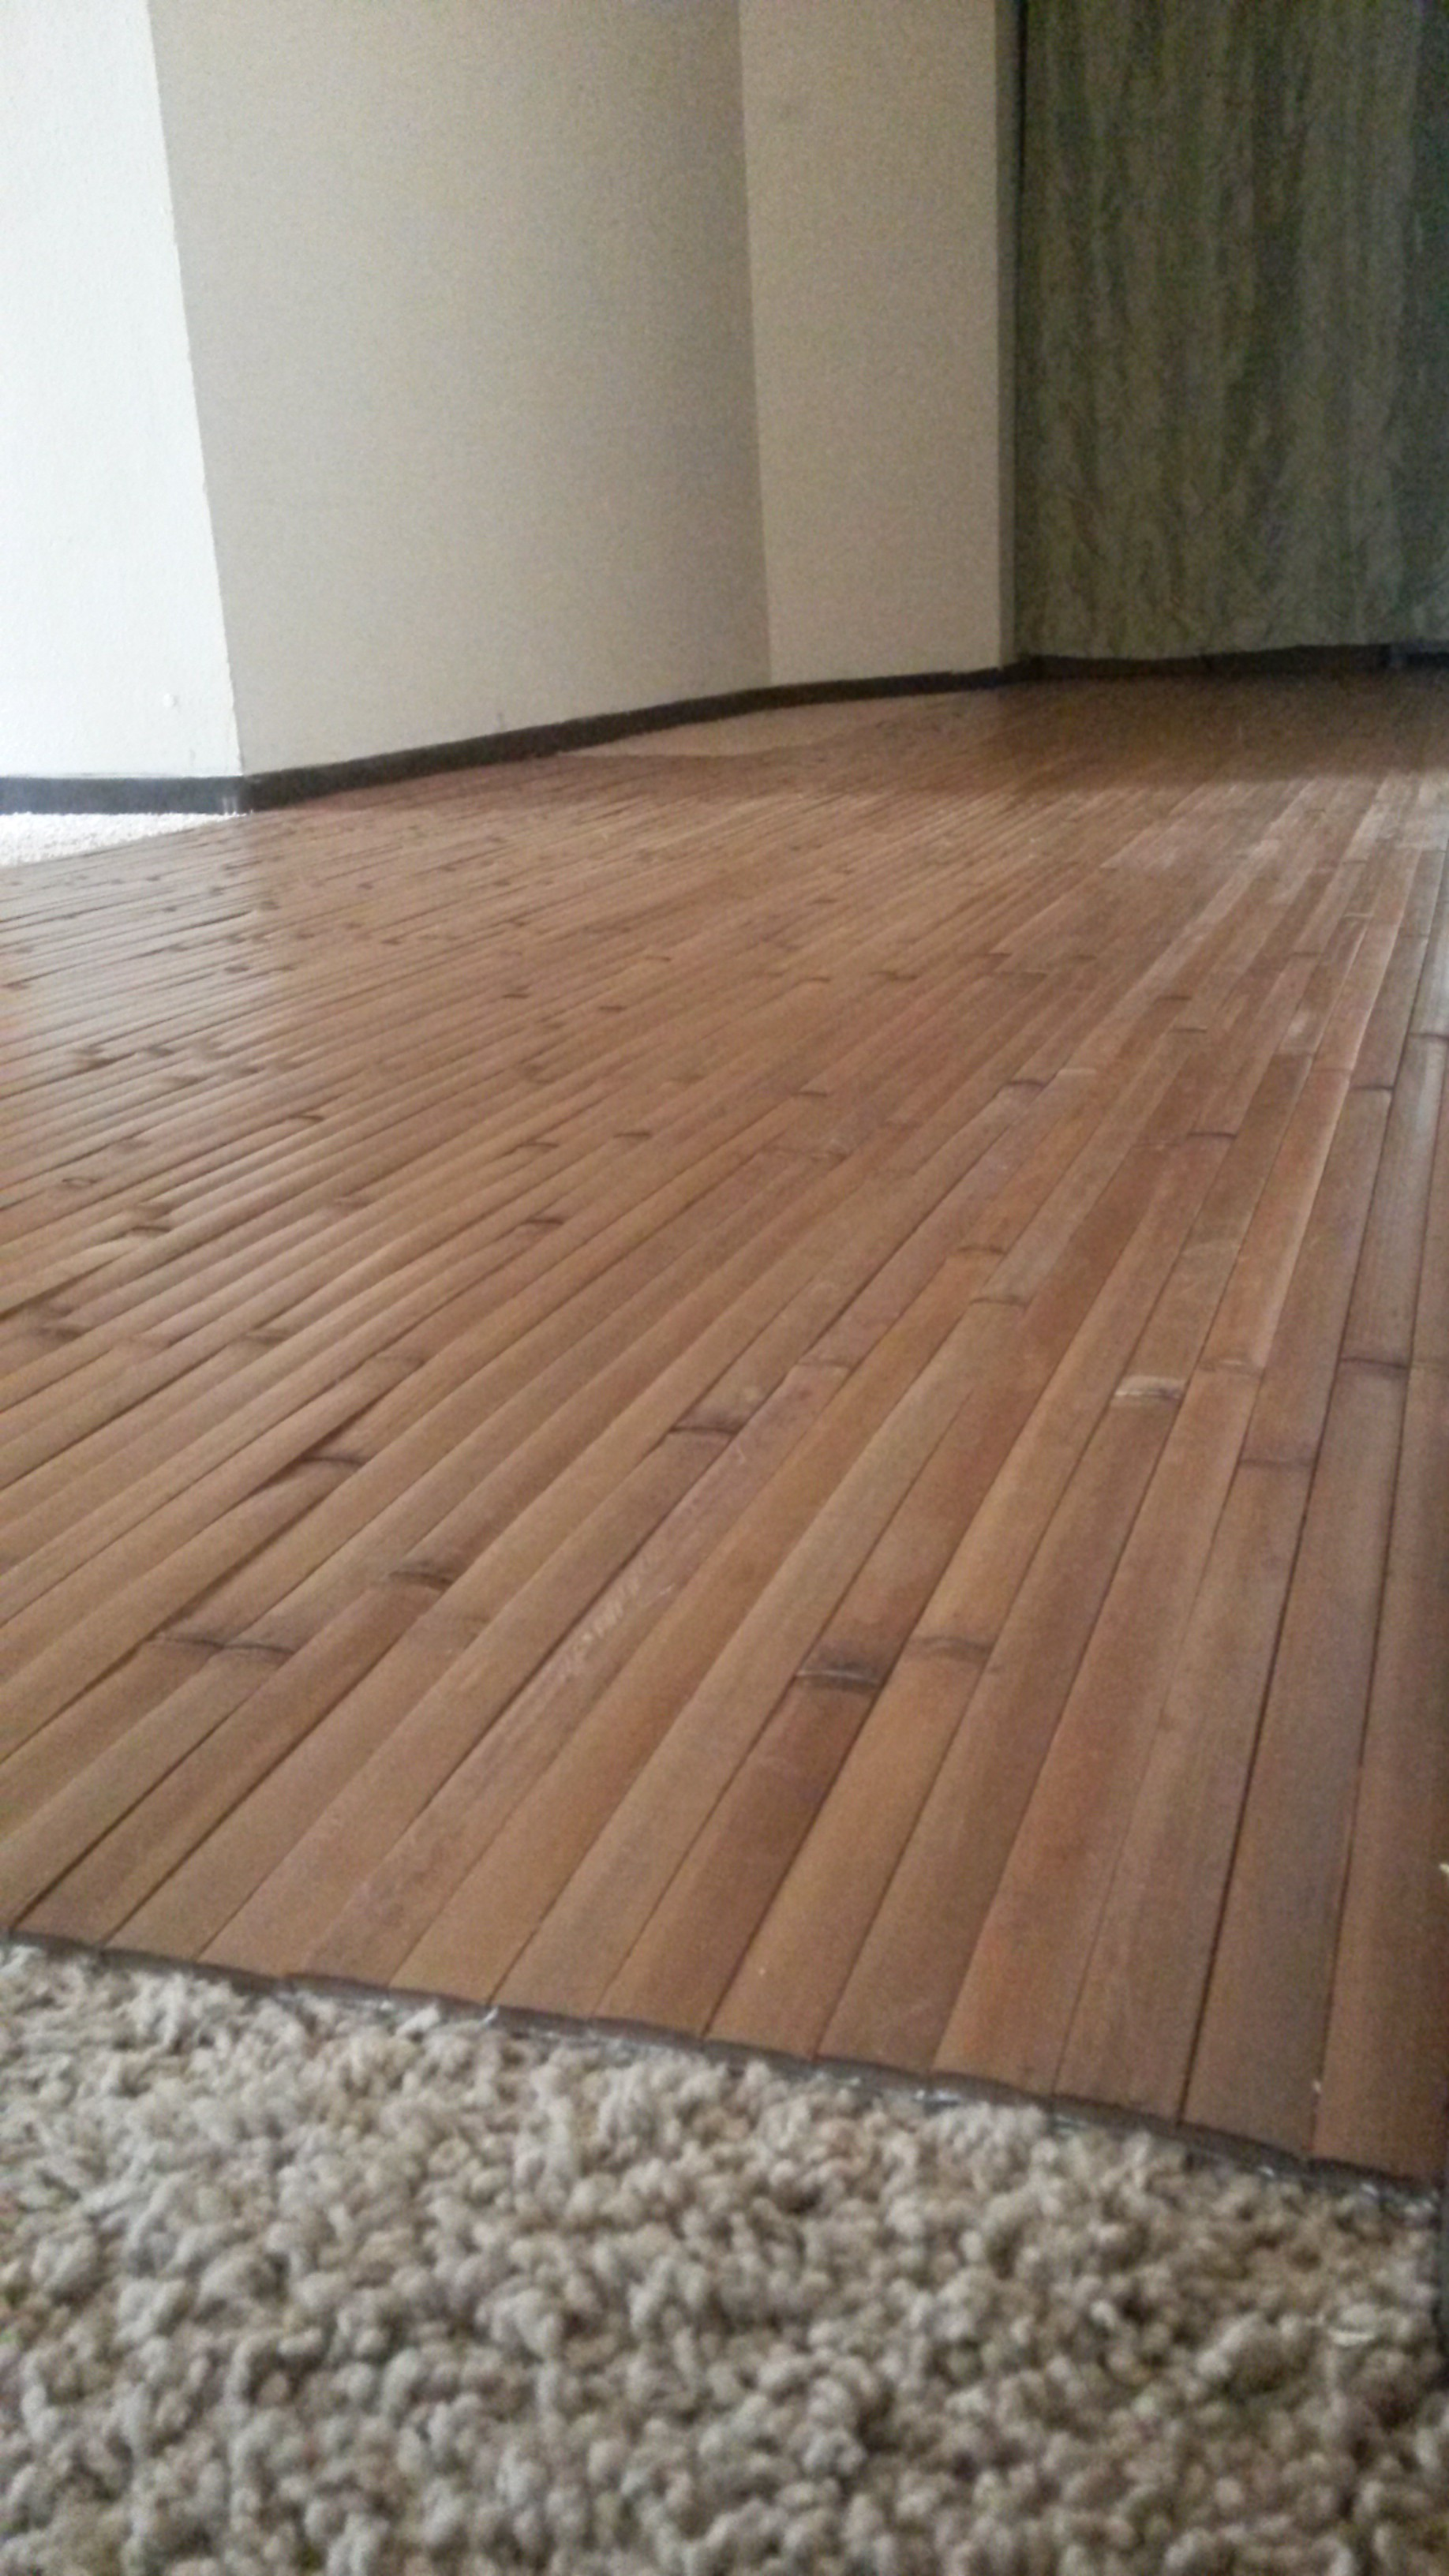 Portable wood floor over carpet carpet vidalondon for Hardwood floor covering